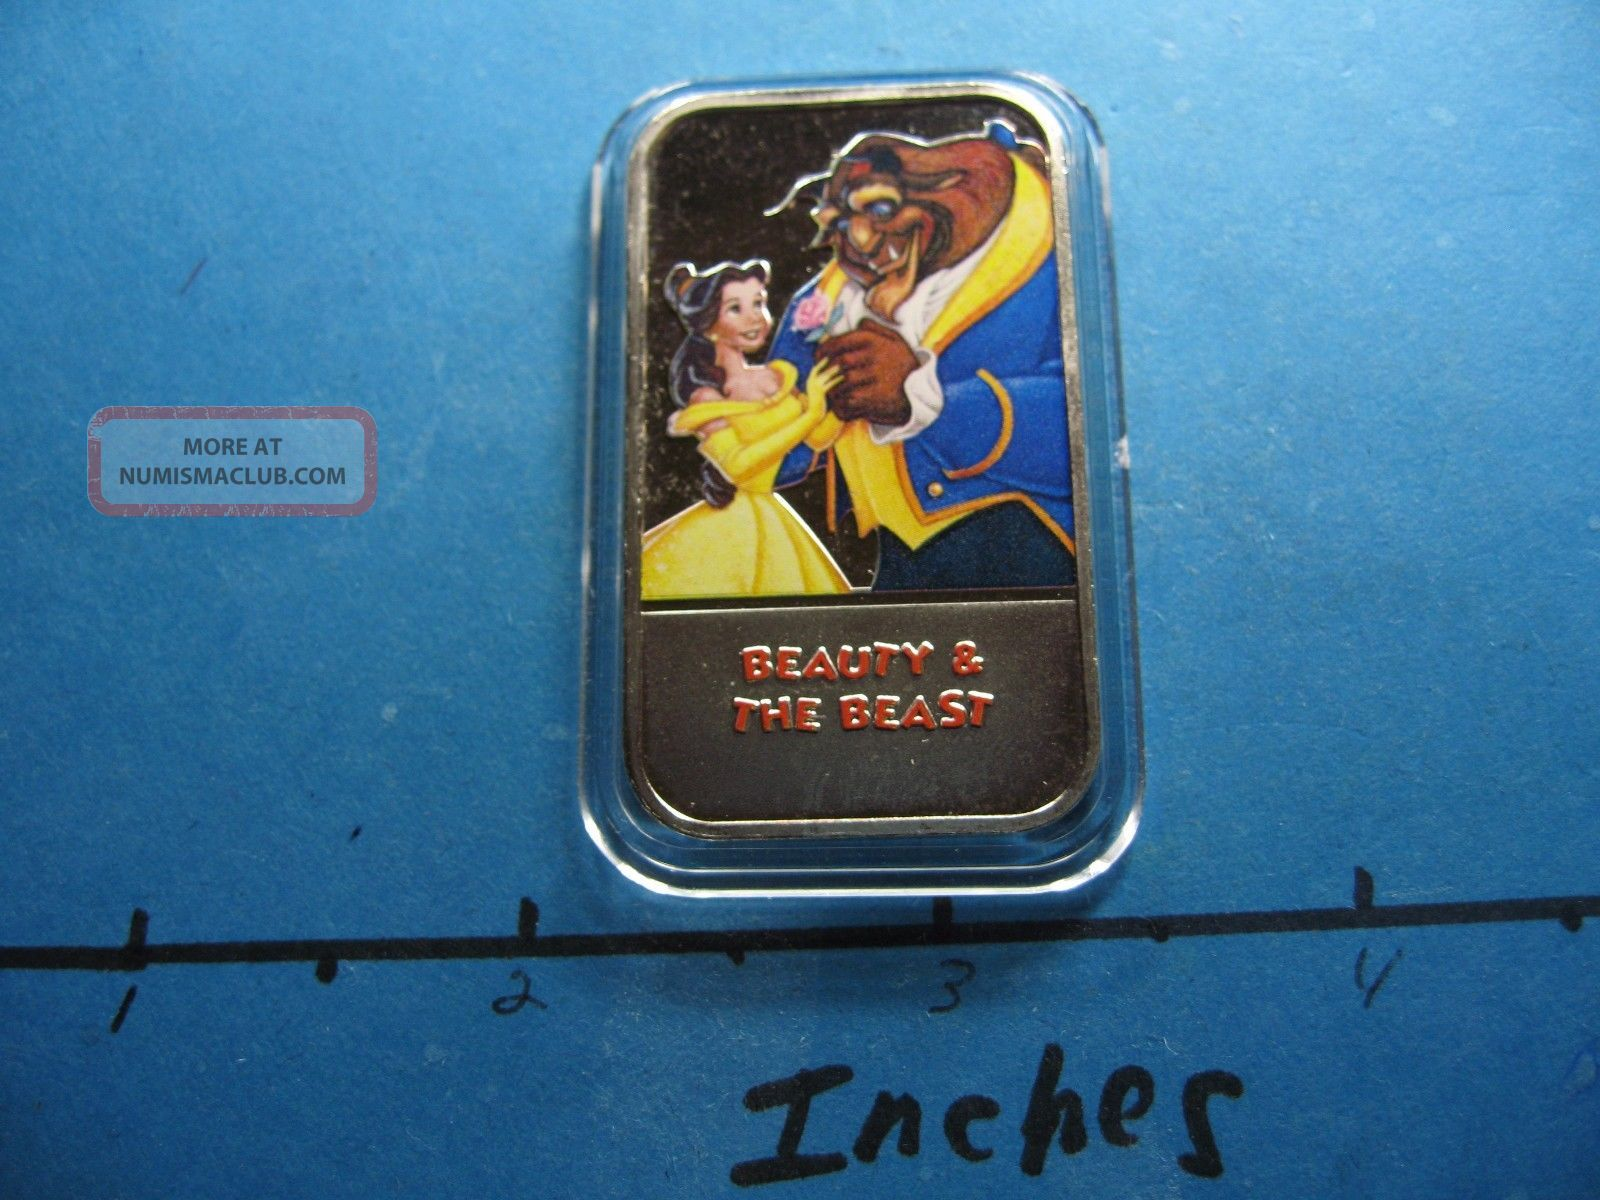 Beauty & The Beast Disney Enamel Usps Very Rare 999 Silver Bar E Silver photo